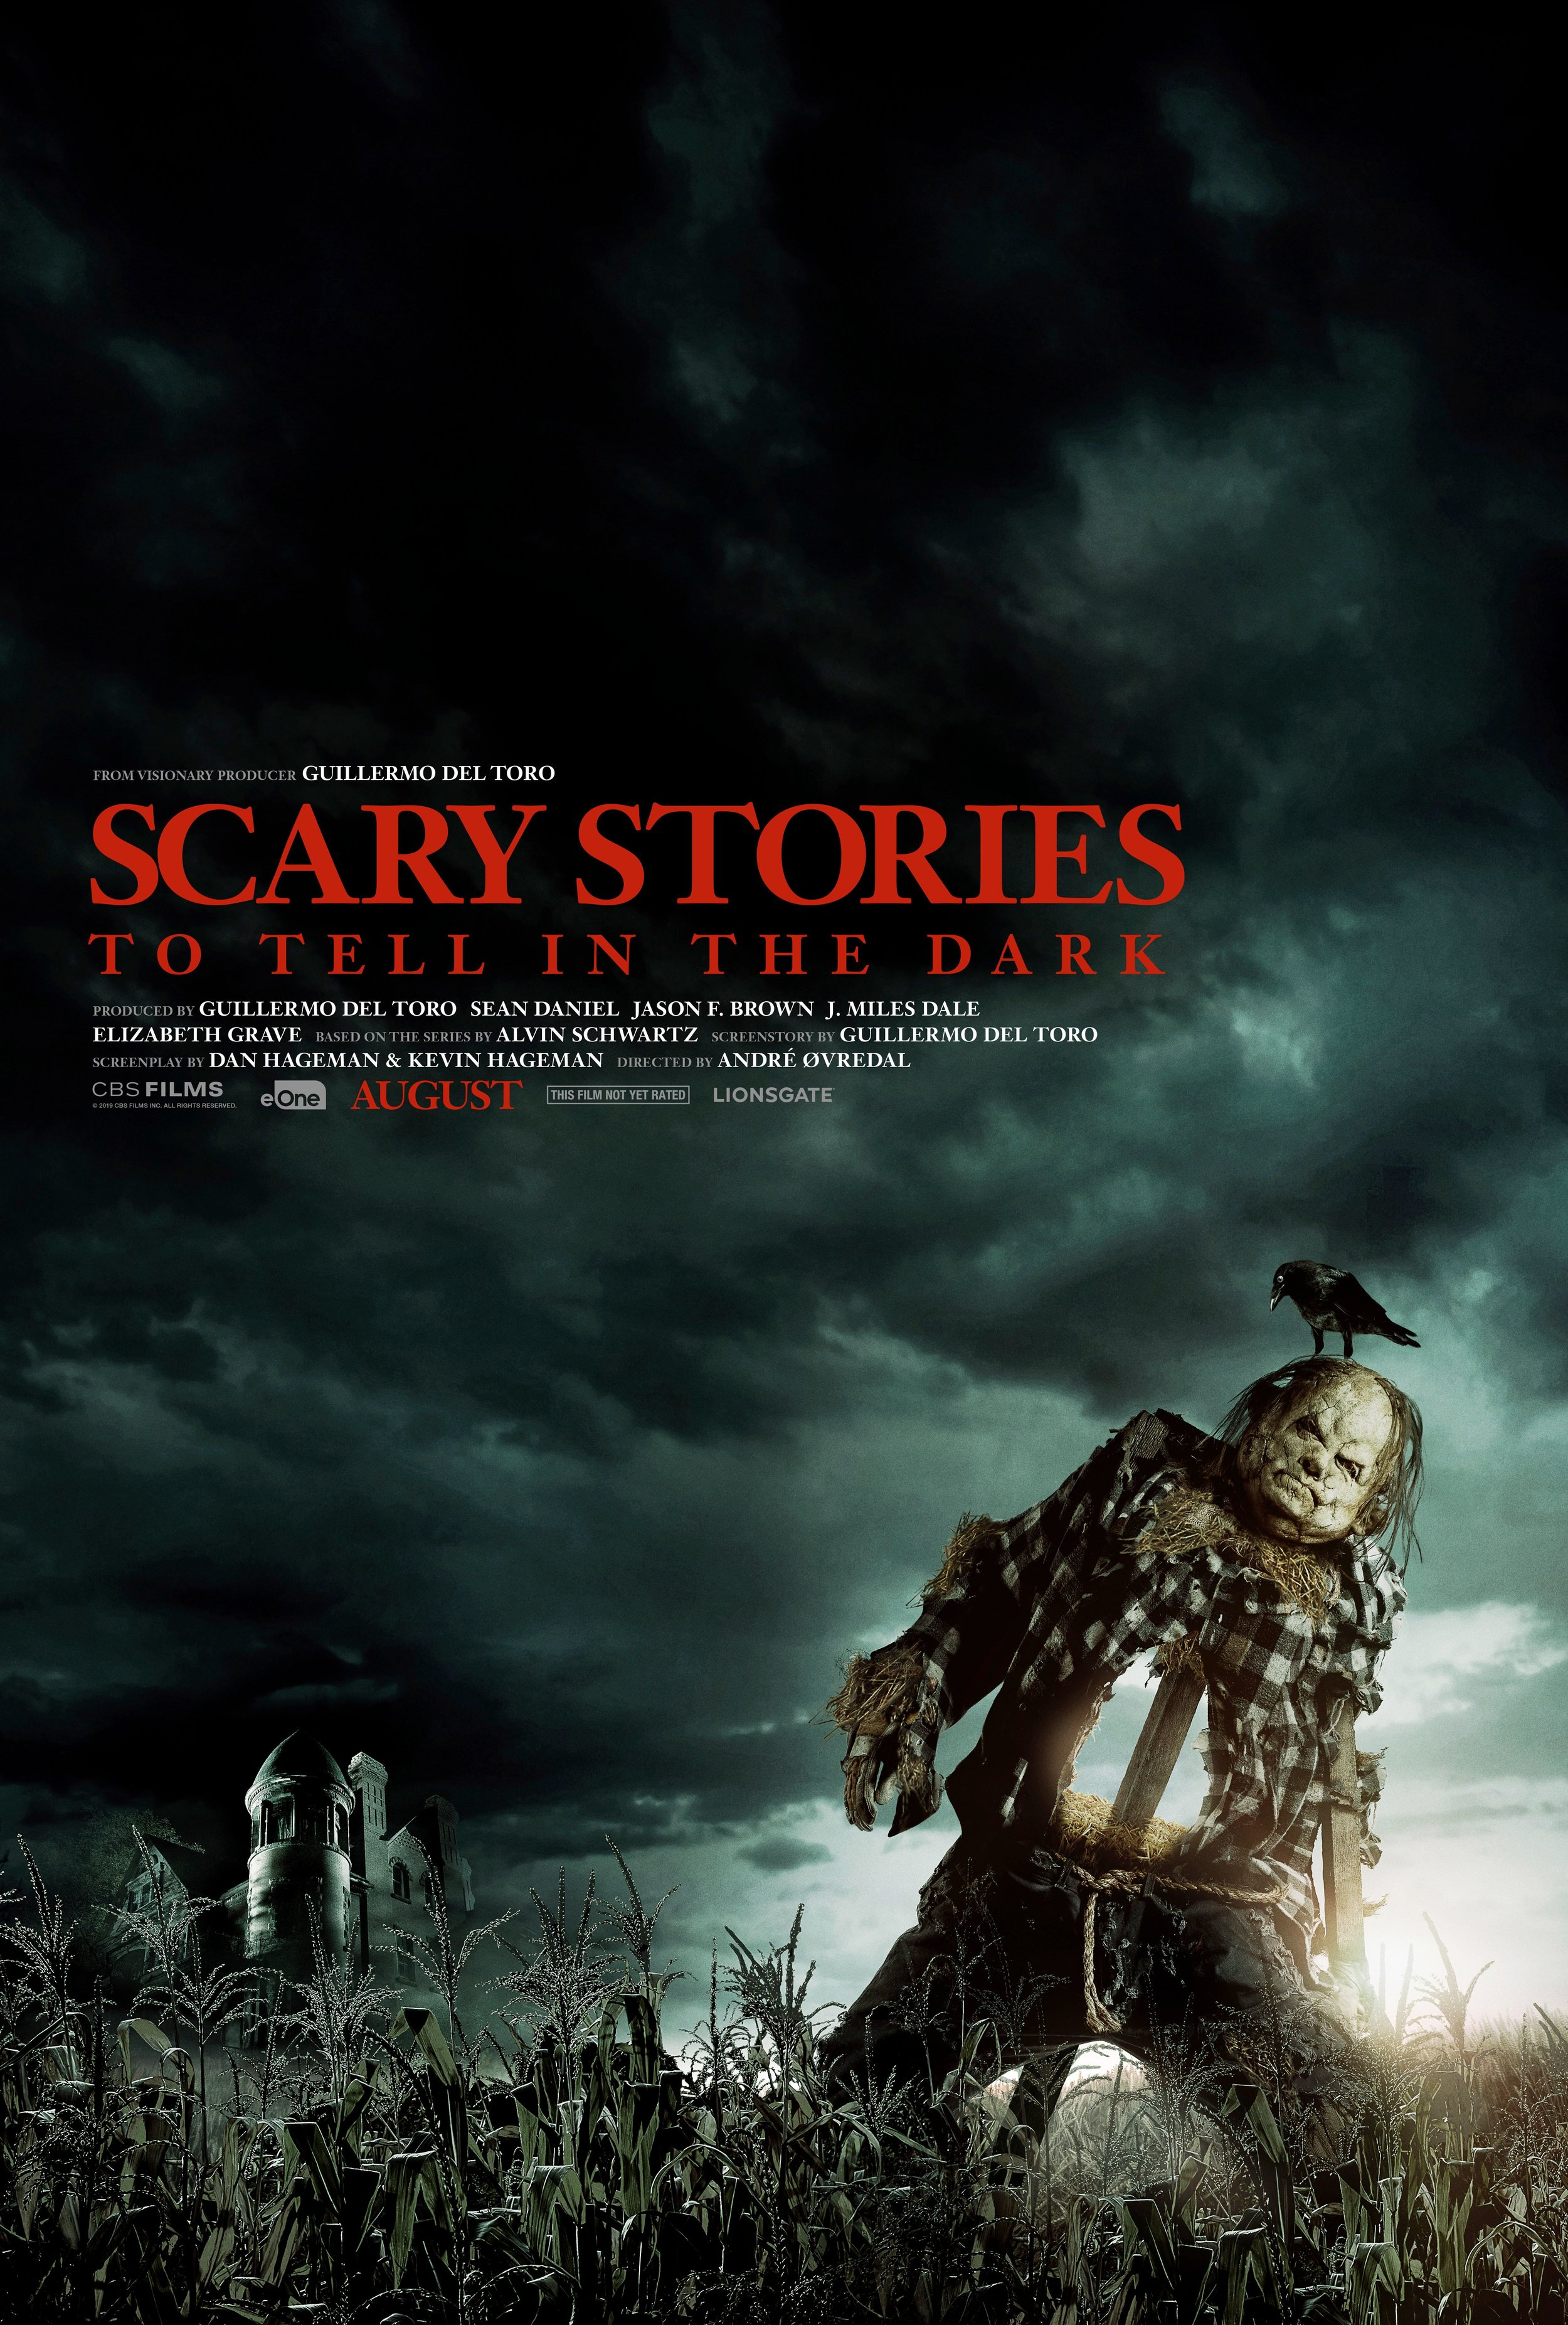 poster-for-guillermo-del-toros-scary-stories-to-tell-in-the-dark-trailer-coming-on-sunday